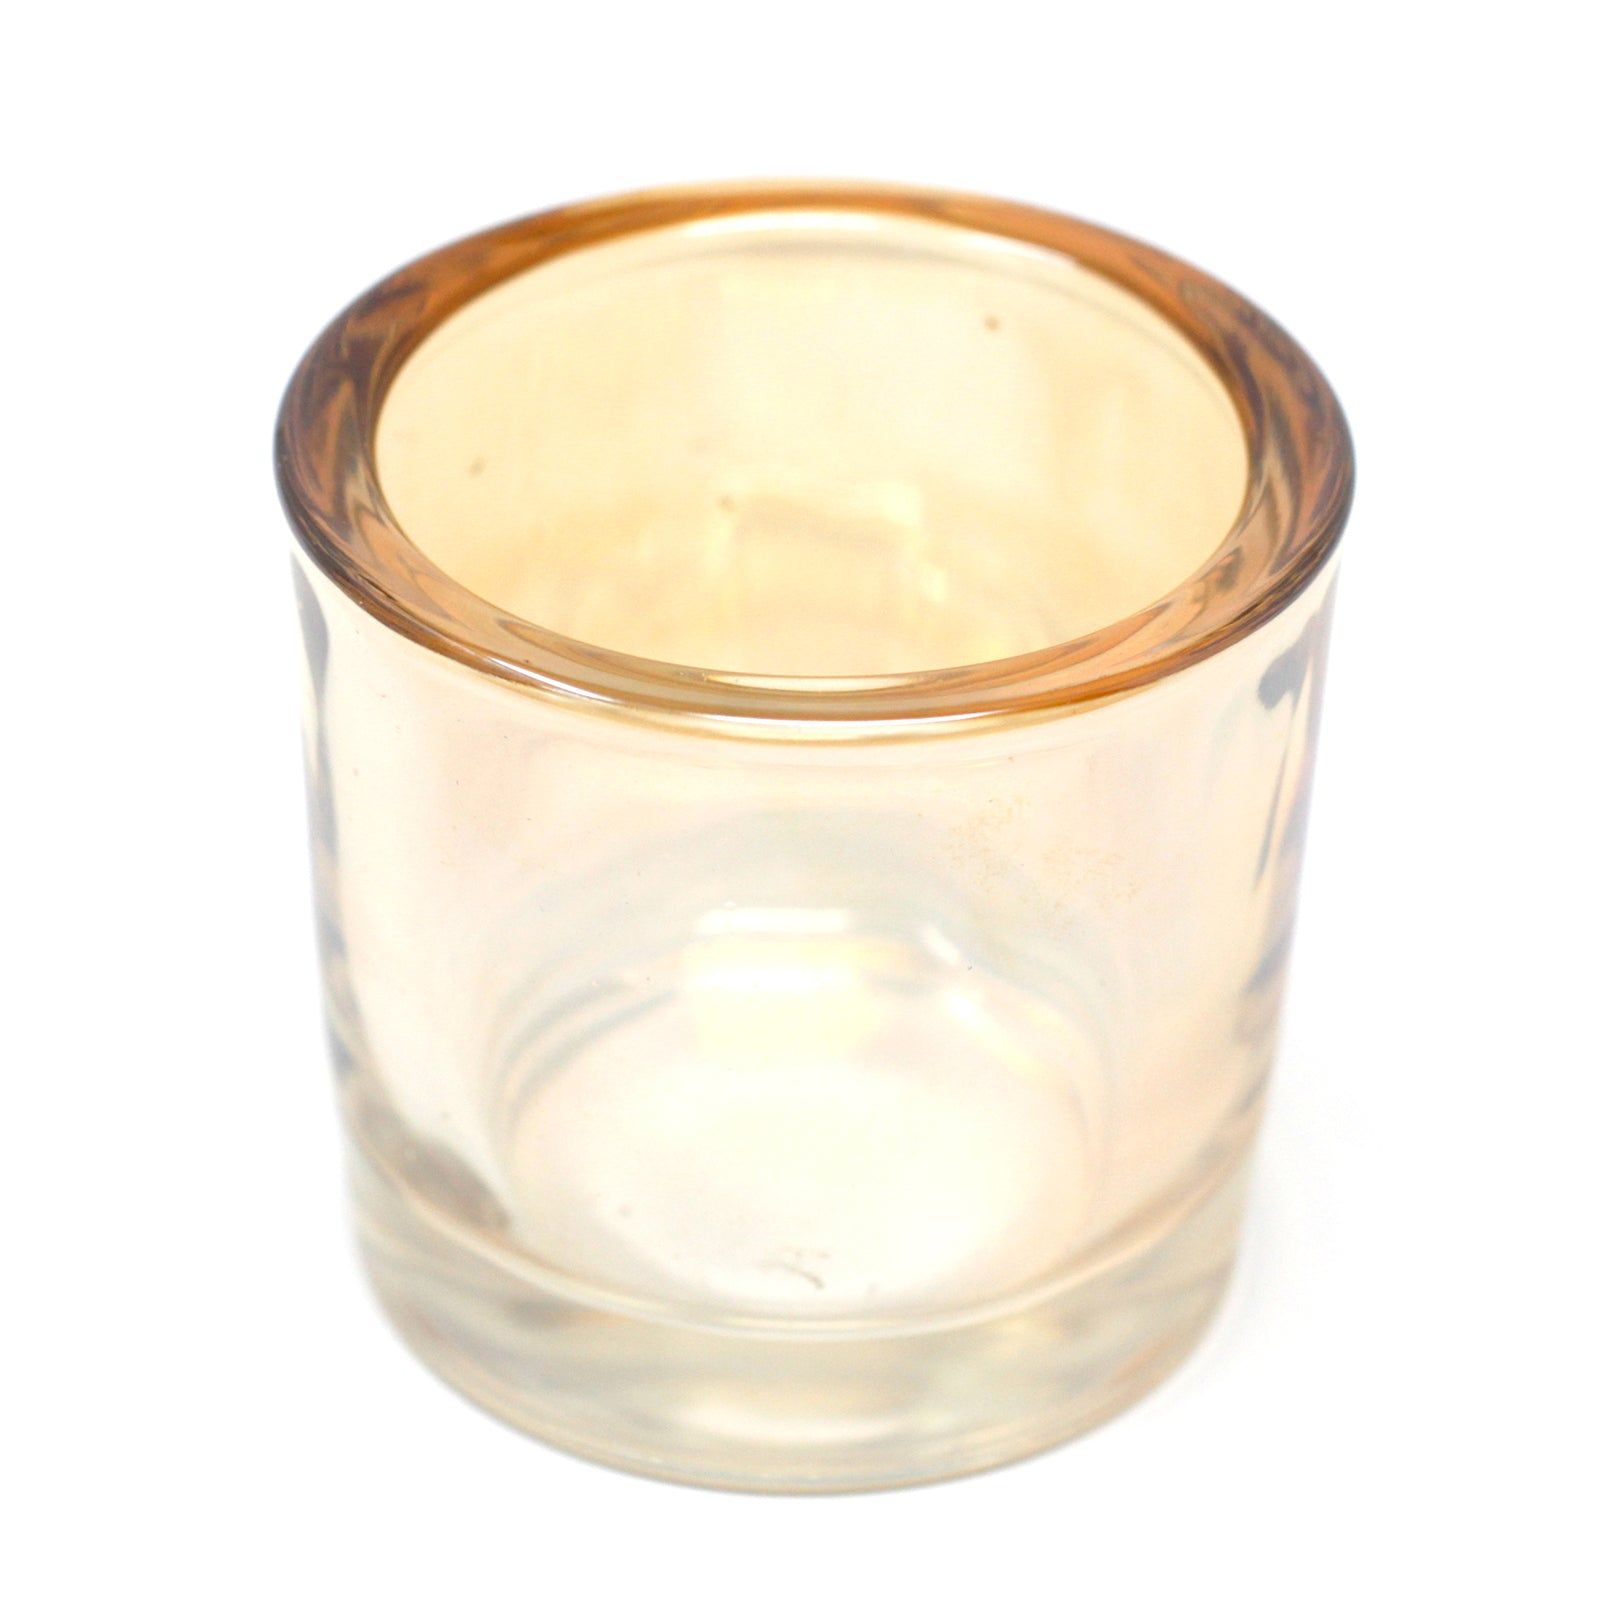 Candle (Votive/tealight) Holder  Centrepiece ~ Spare Votive Glass Cup (One)